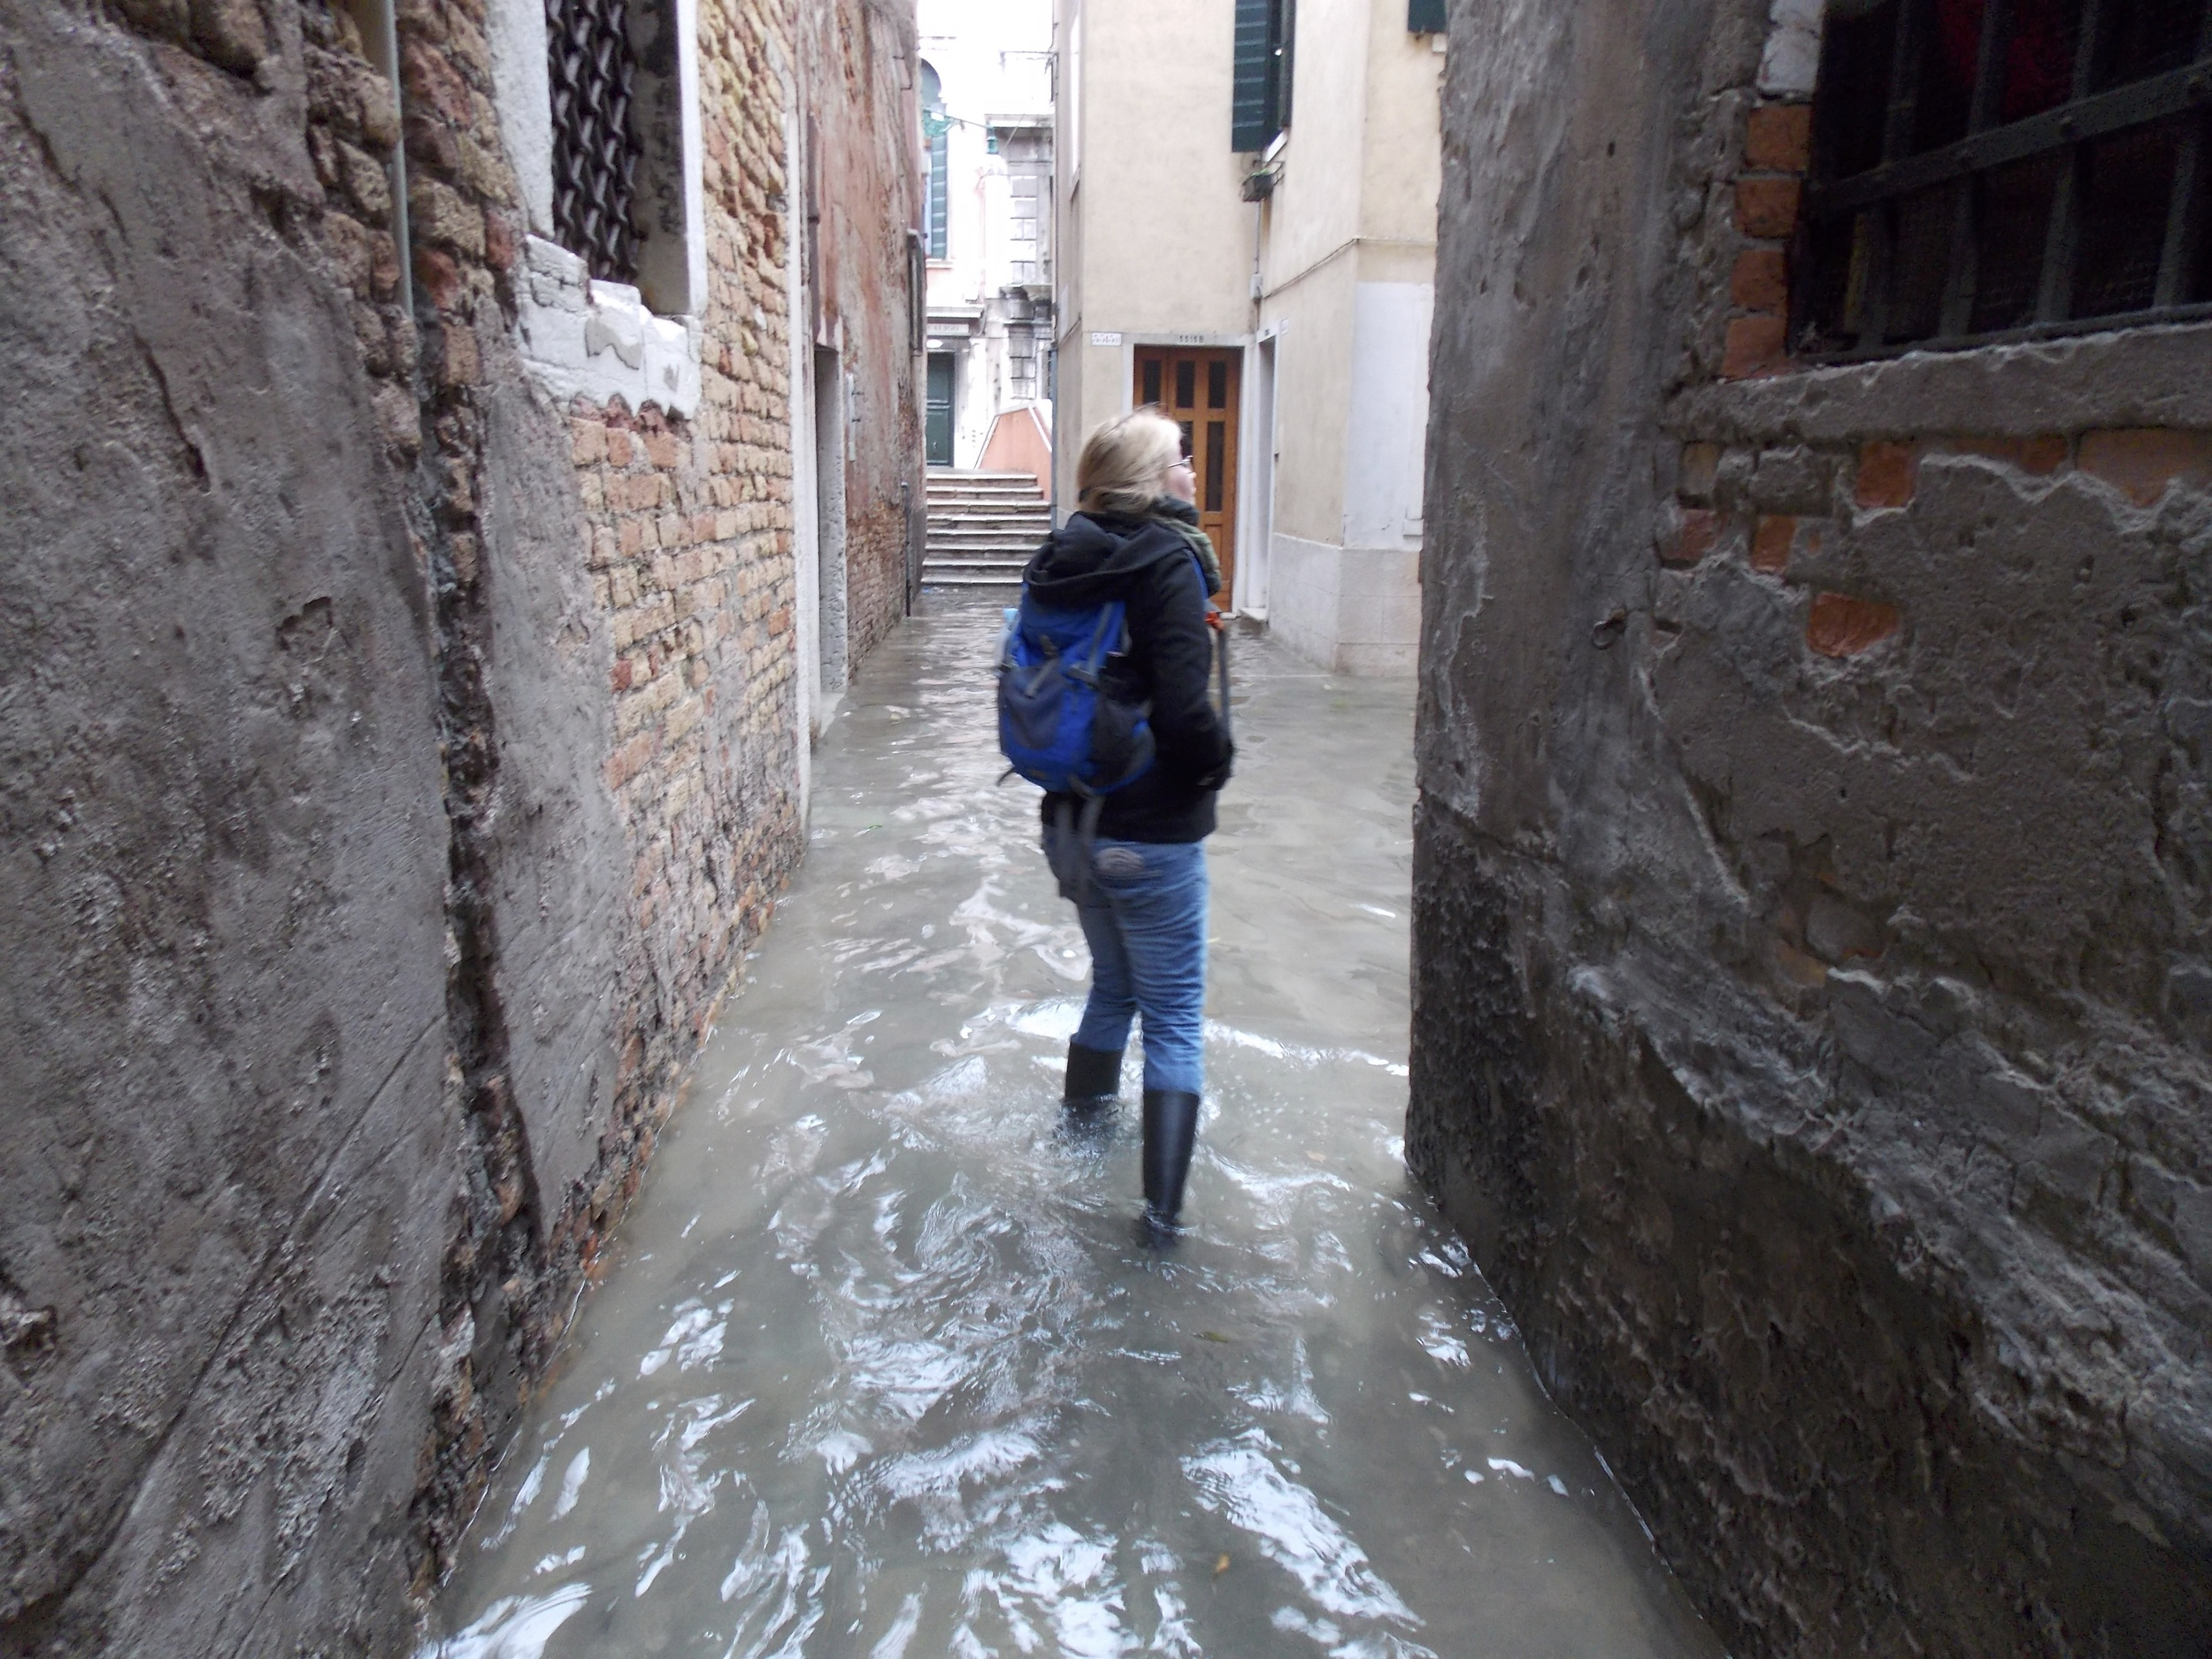 Flooded Streets of Venice